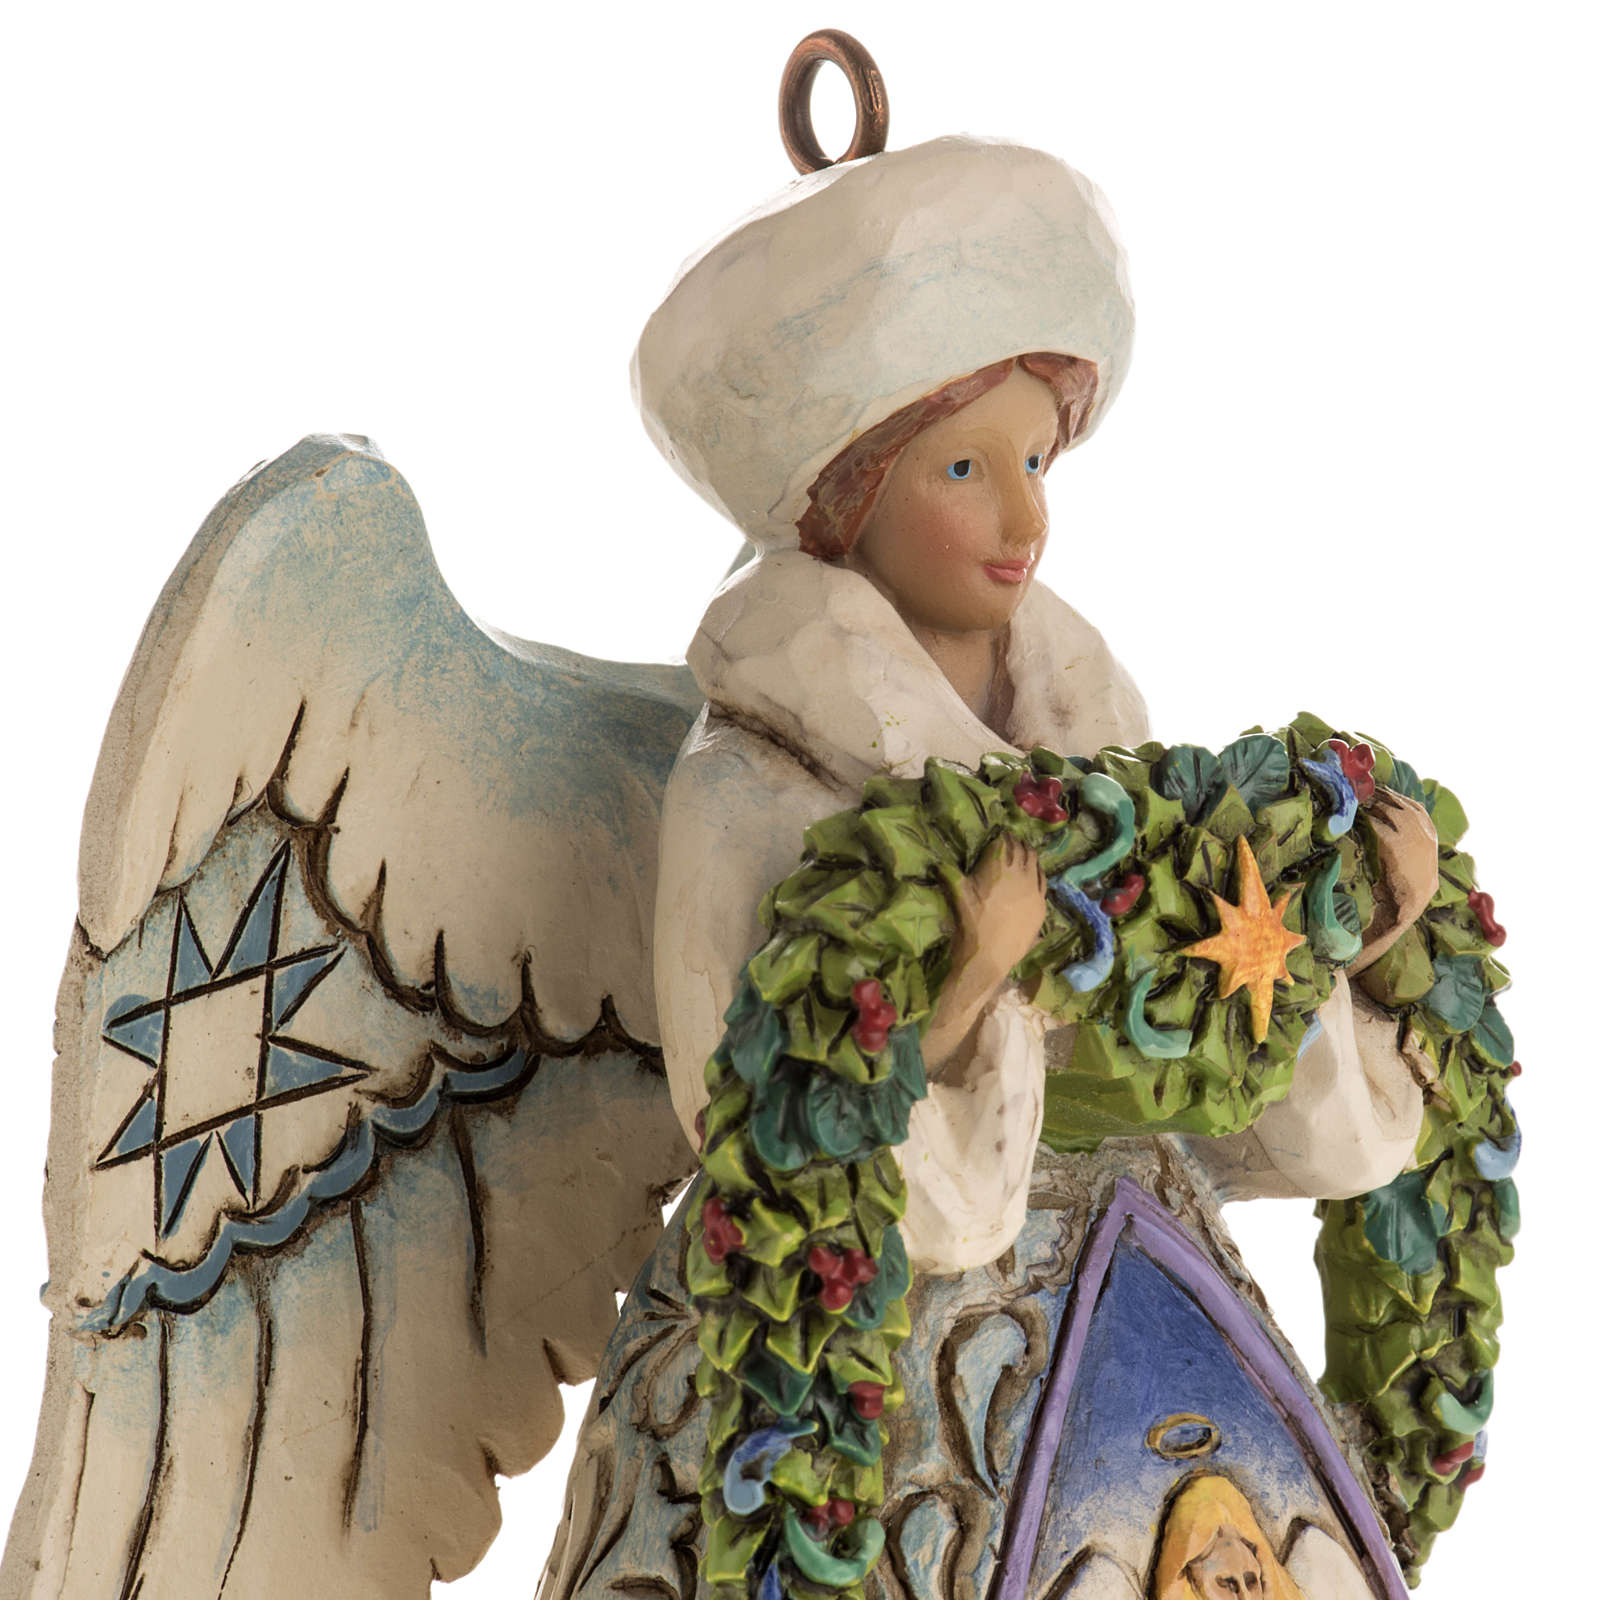 Ángel de Navidad de Jim Shore (Winter Angel Nativity) 4